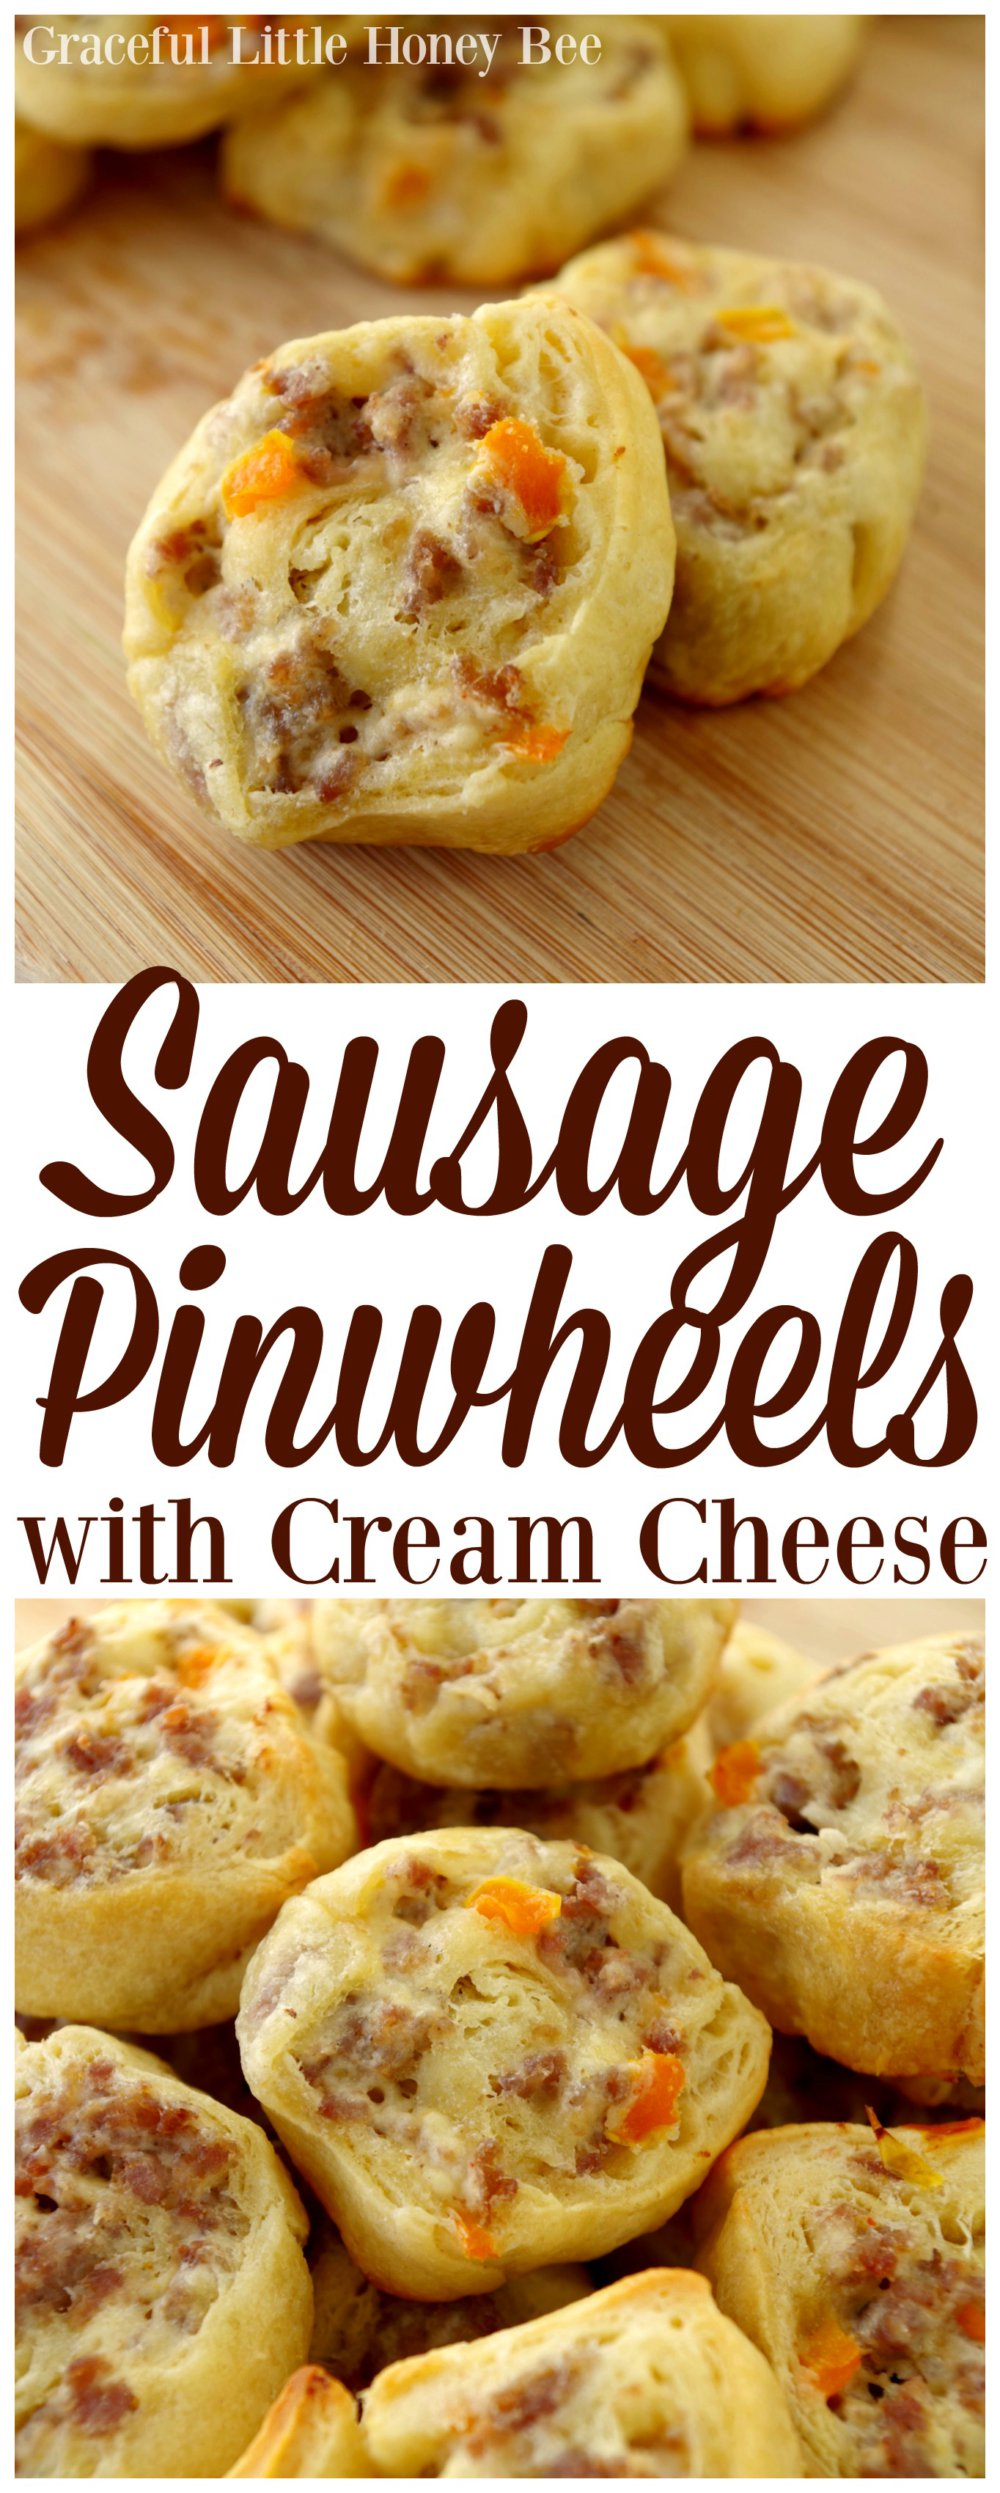 Sausage Pinwheels with Cream Cheese